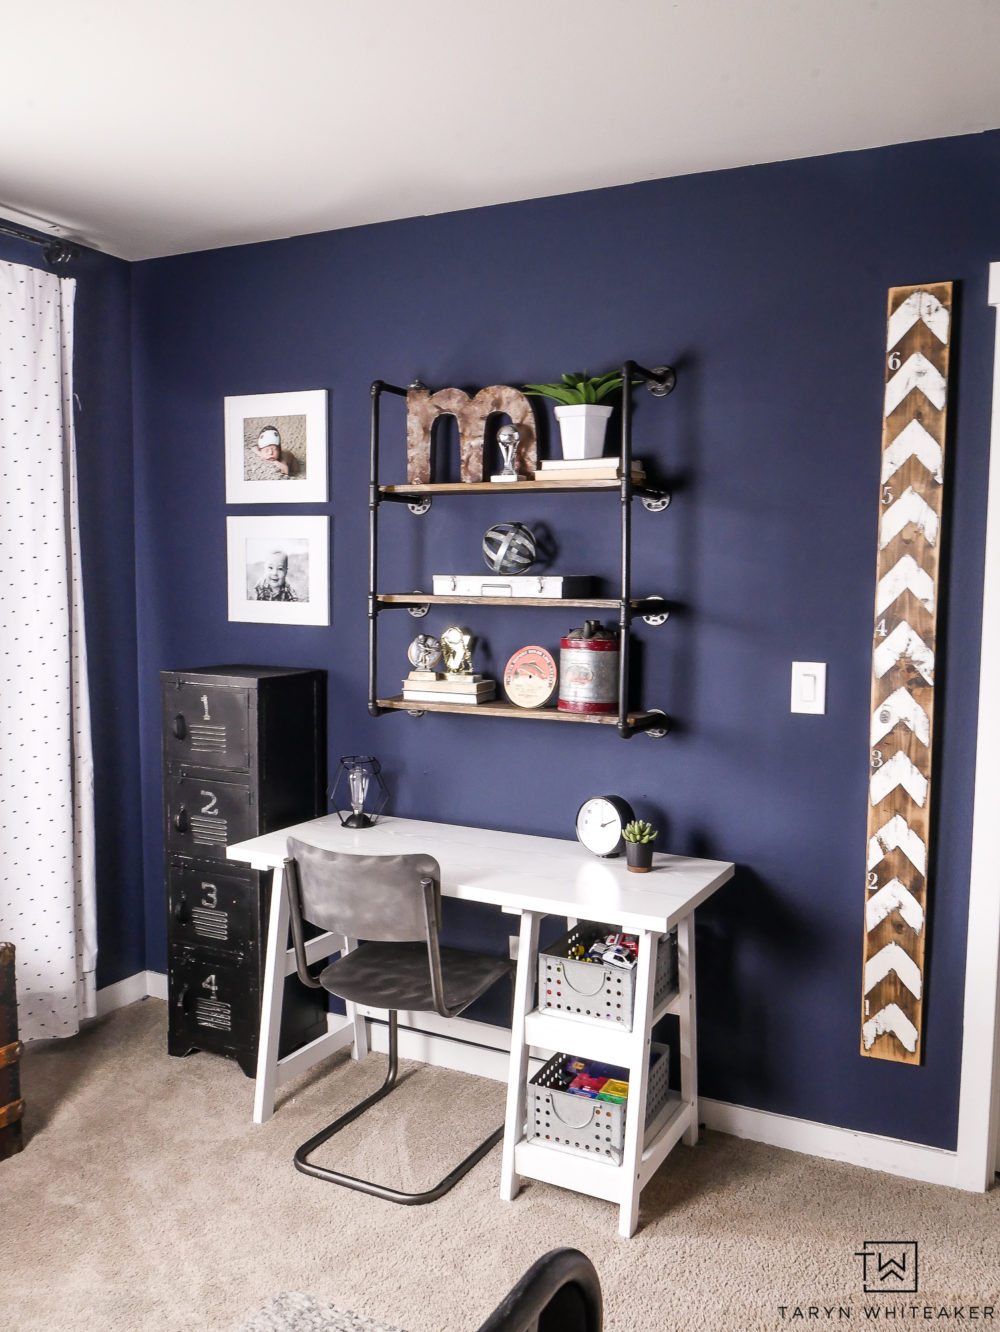 Strange Rustic Navy Blue Boys Room Decor Taryn Whiteaker Download Free Architecture Designs Scobabritishbridgeorg